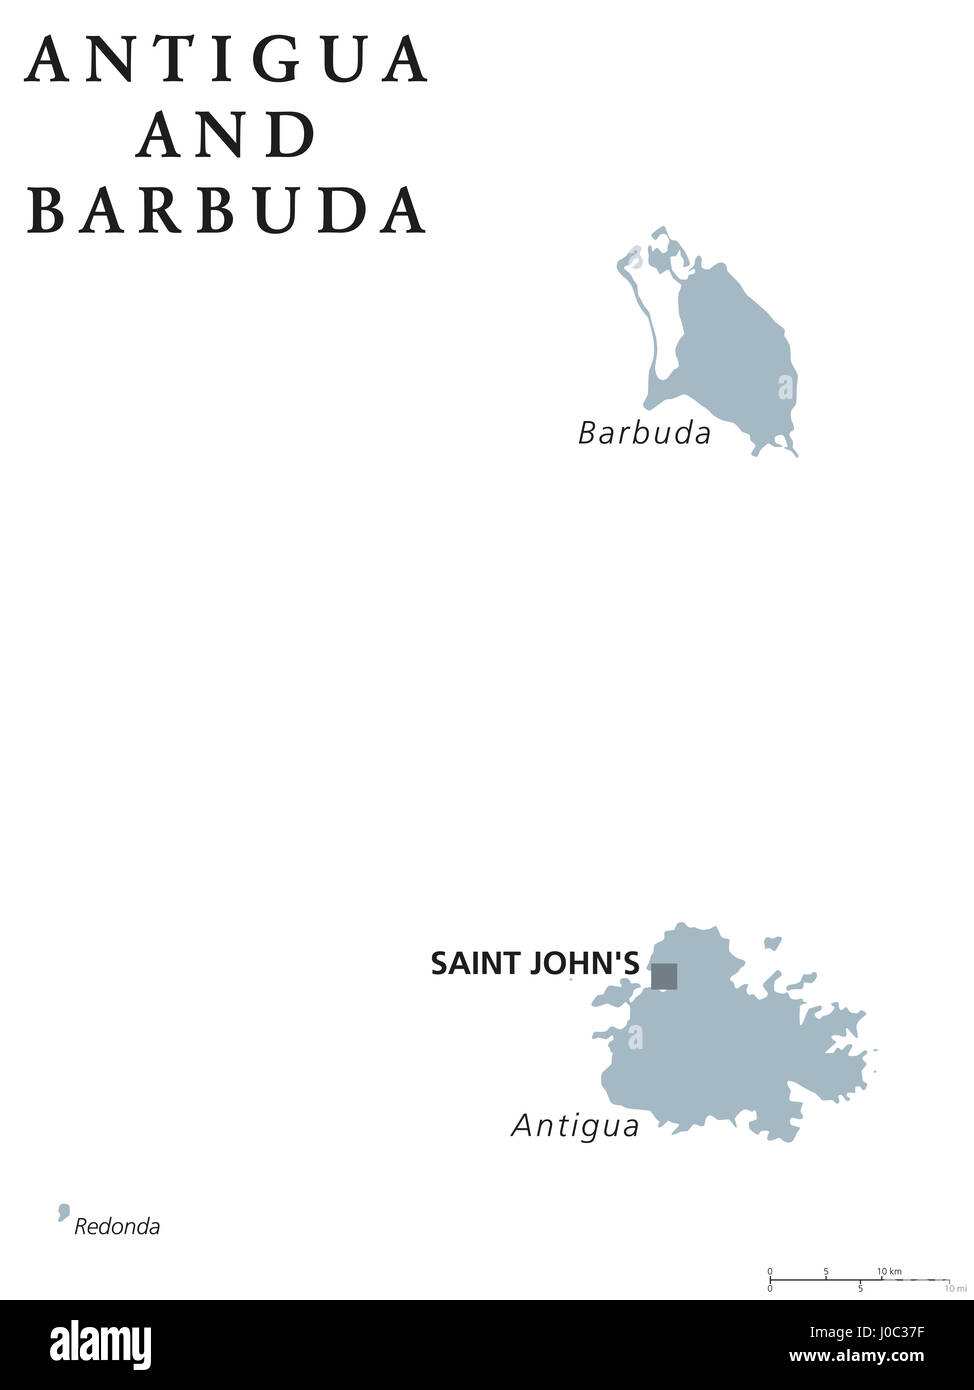 Antigua and Barbuda political map with capital Saint Johns